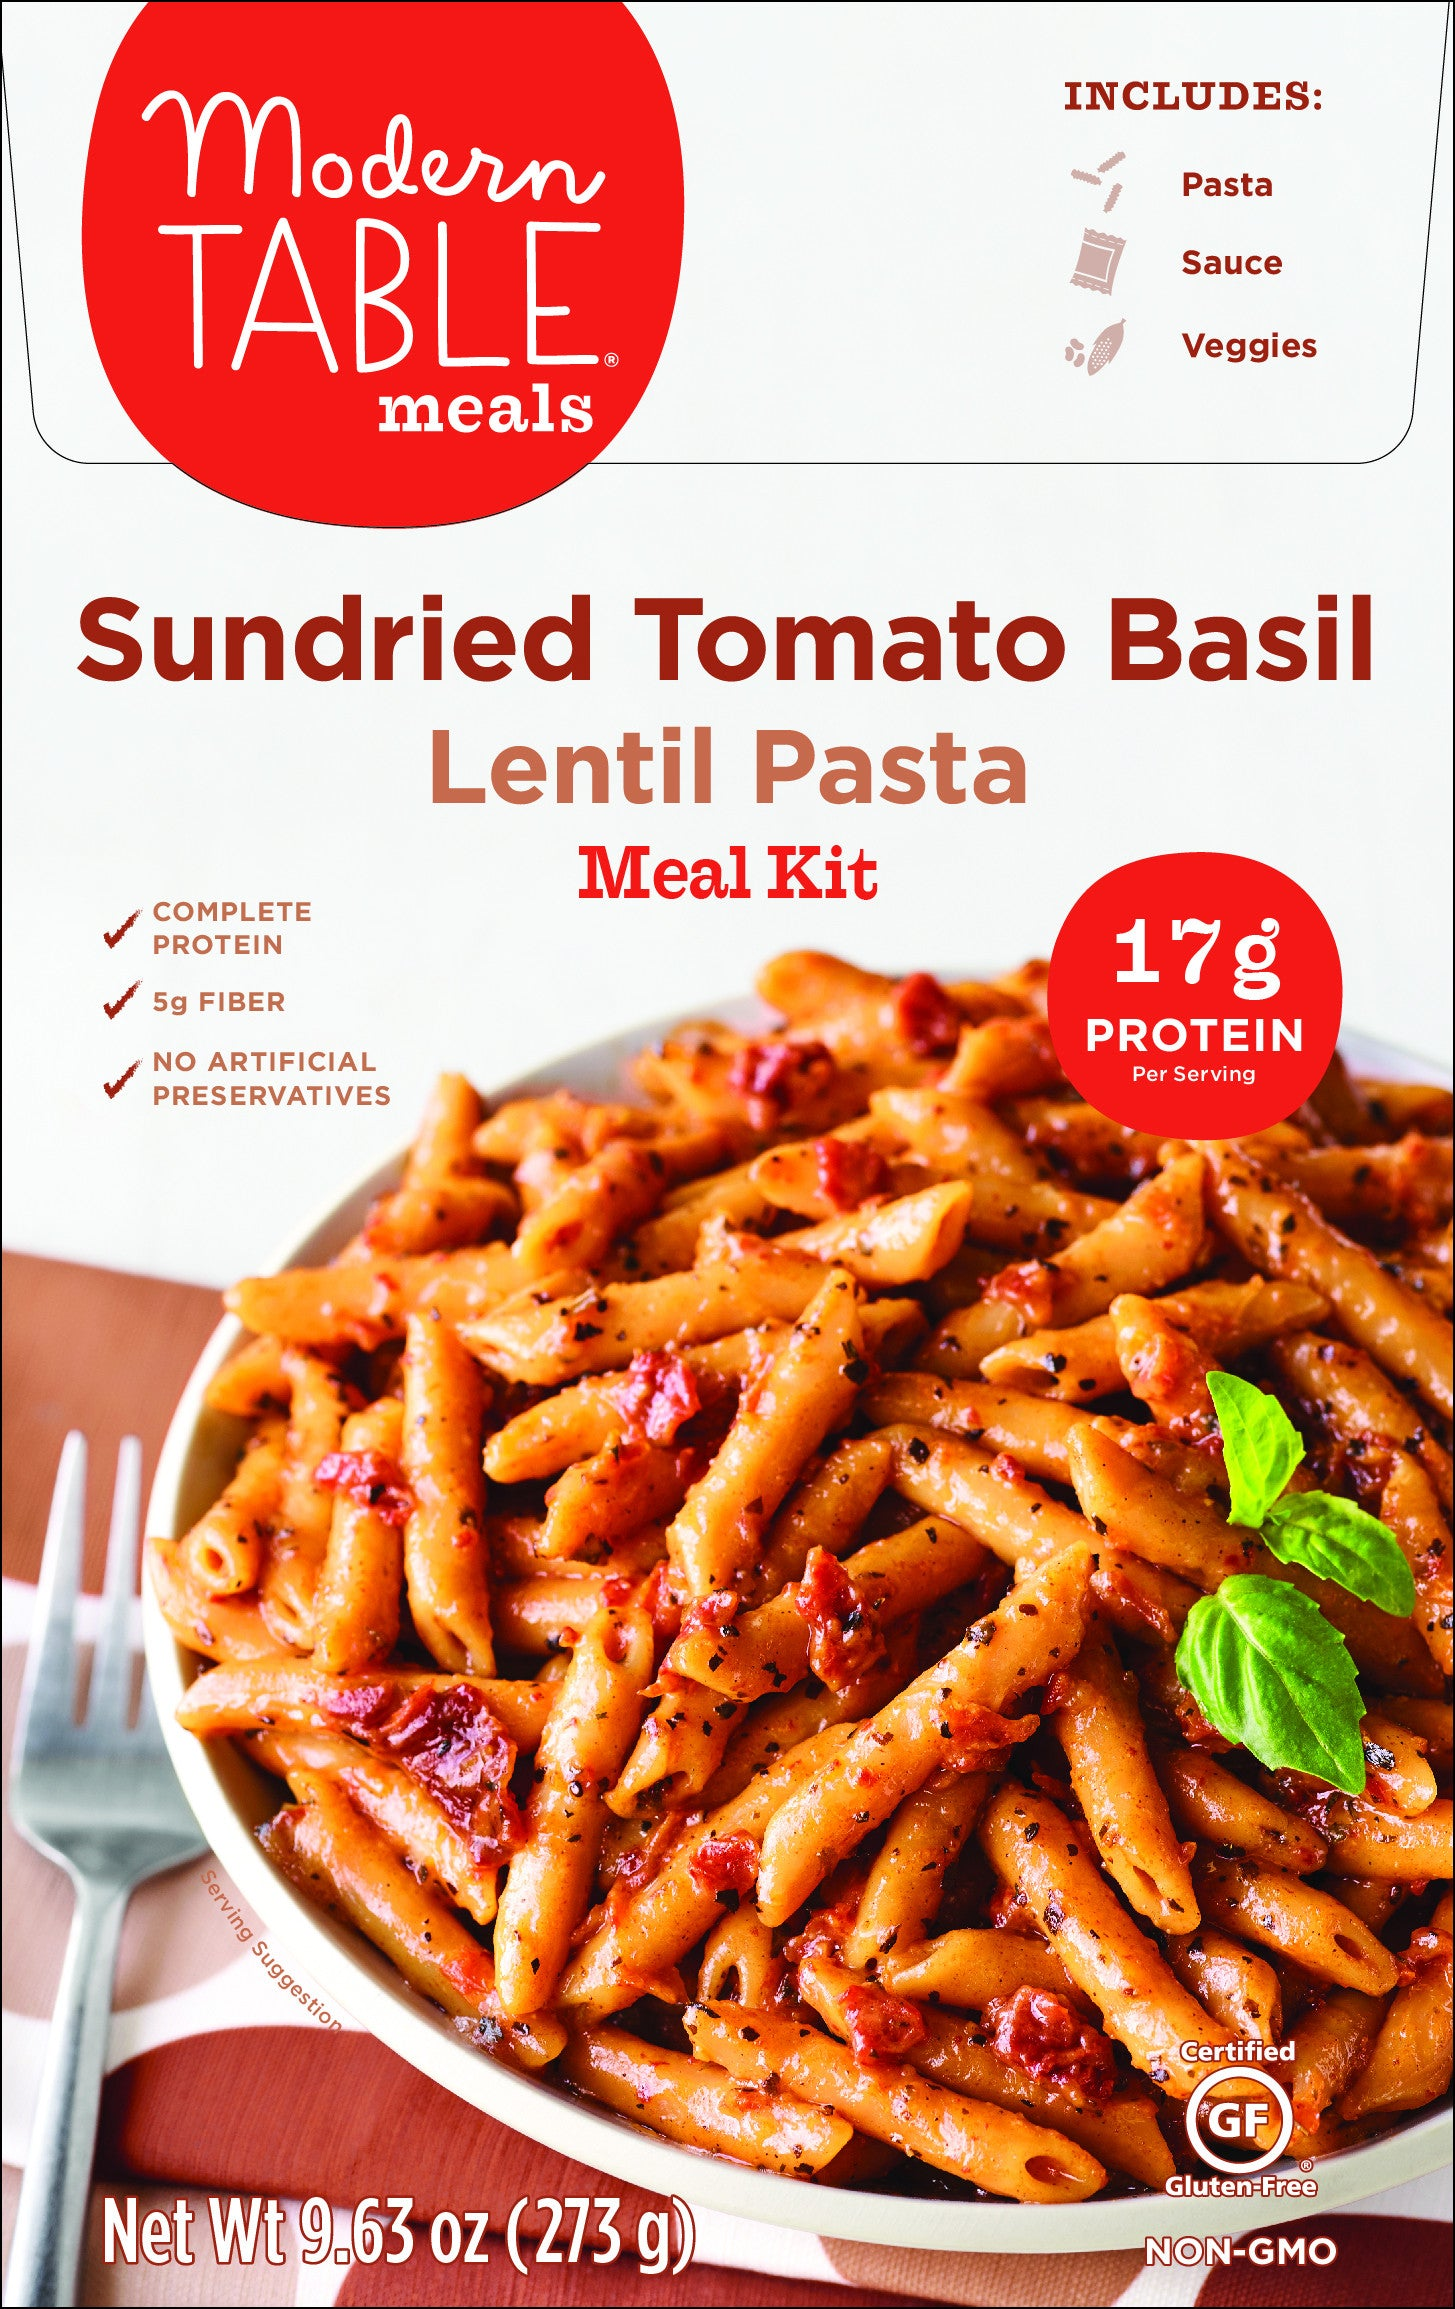 NEW! Sundried Tomato Basil